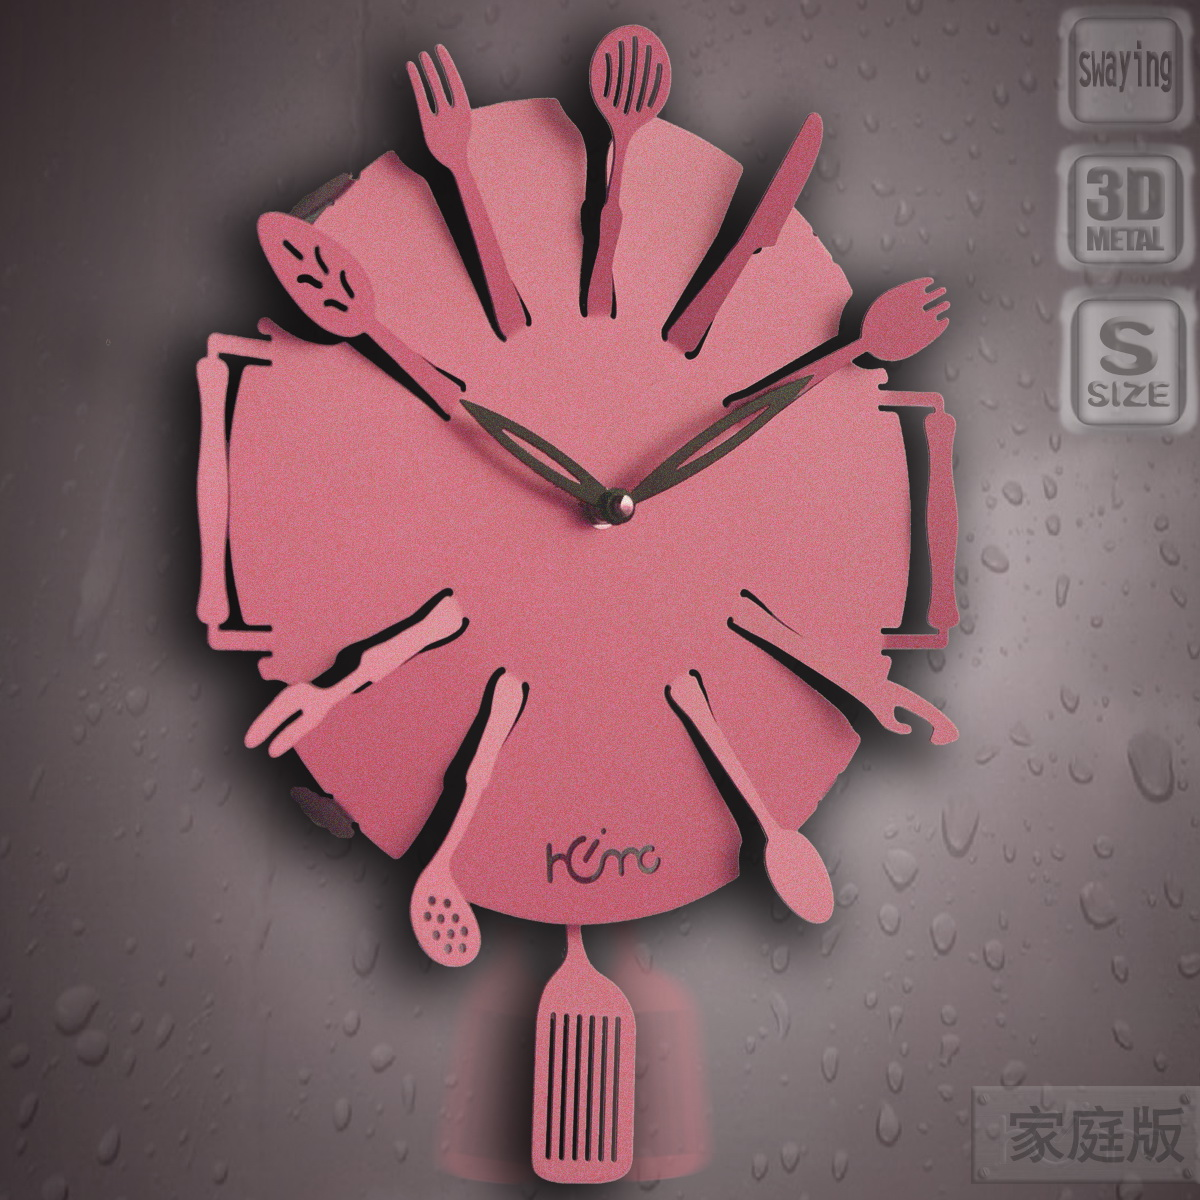 design colors wall clock creative kitchen knife fork knife openings creative kitchen supplies stainless steel kitchen knife